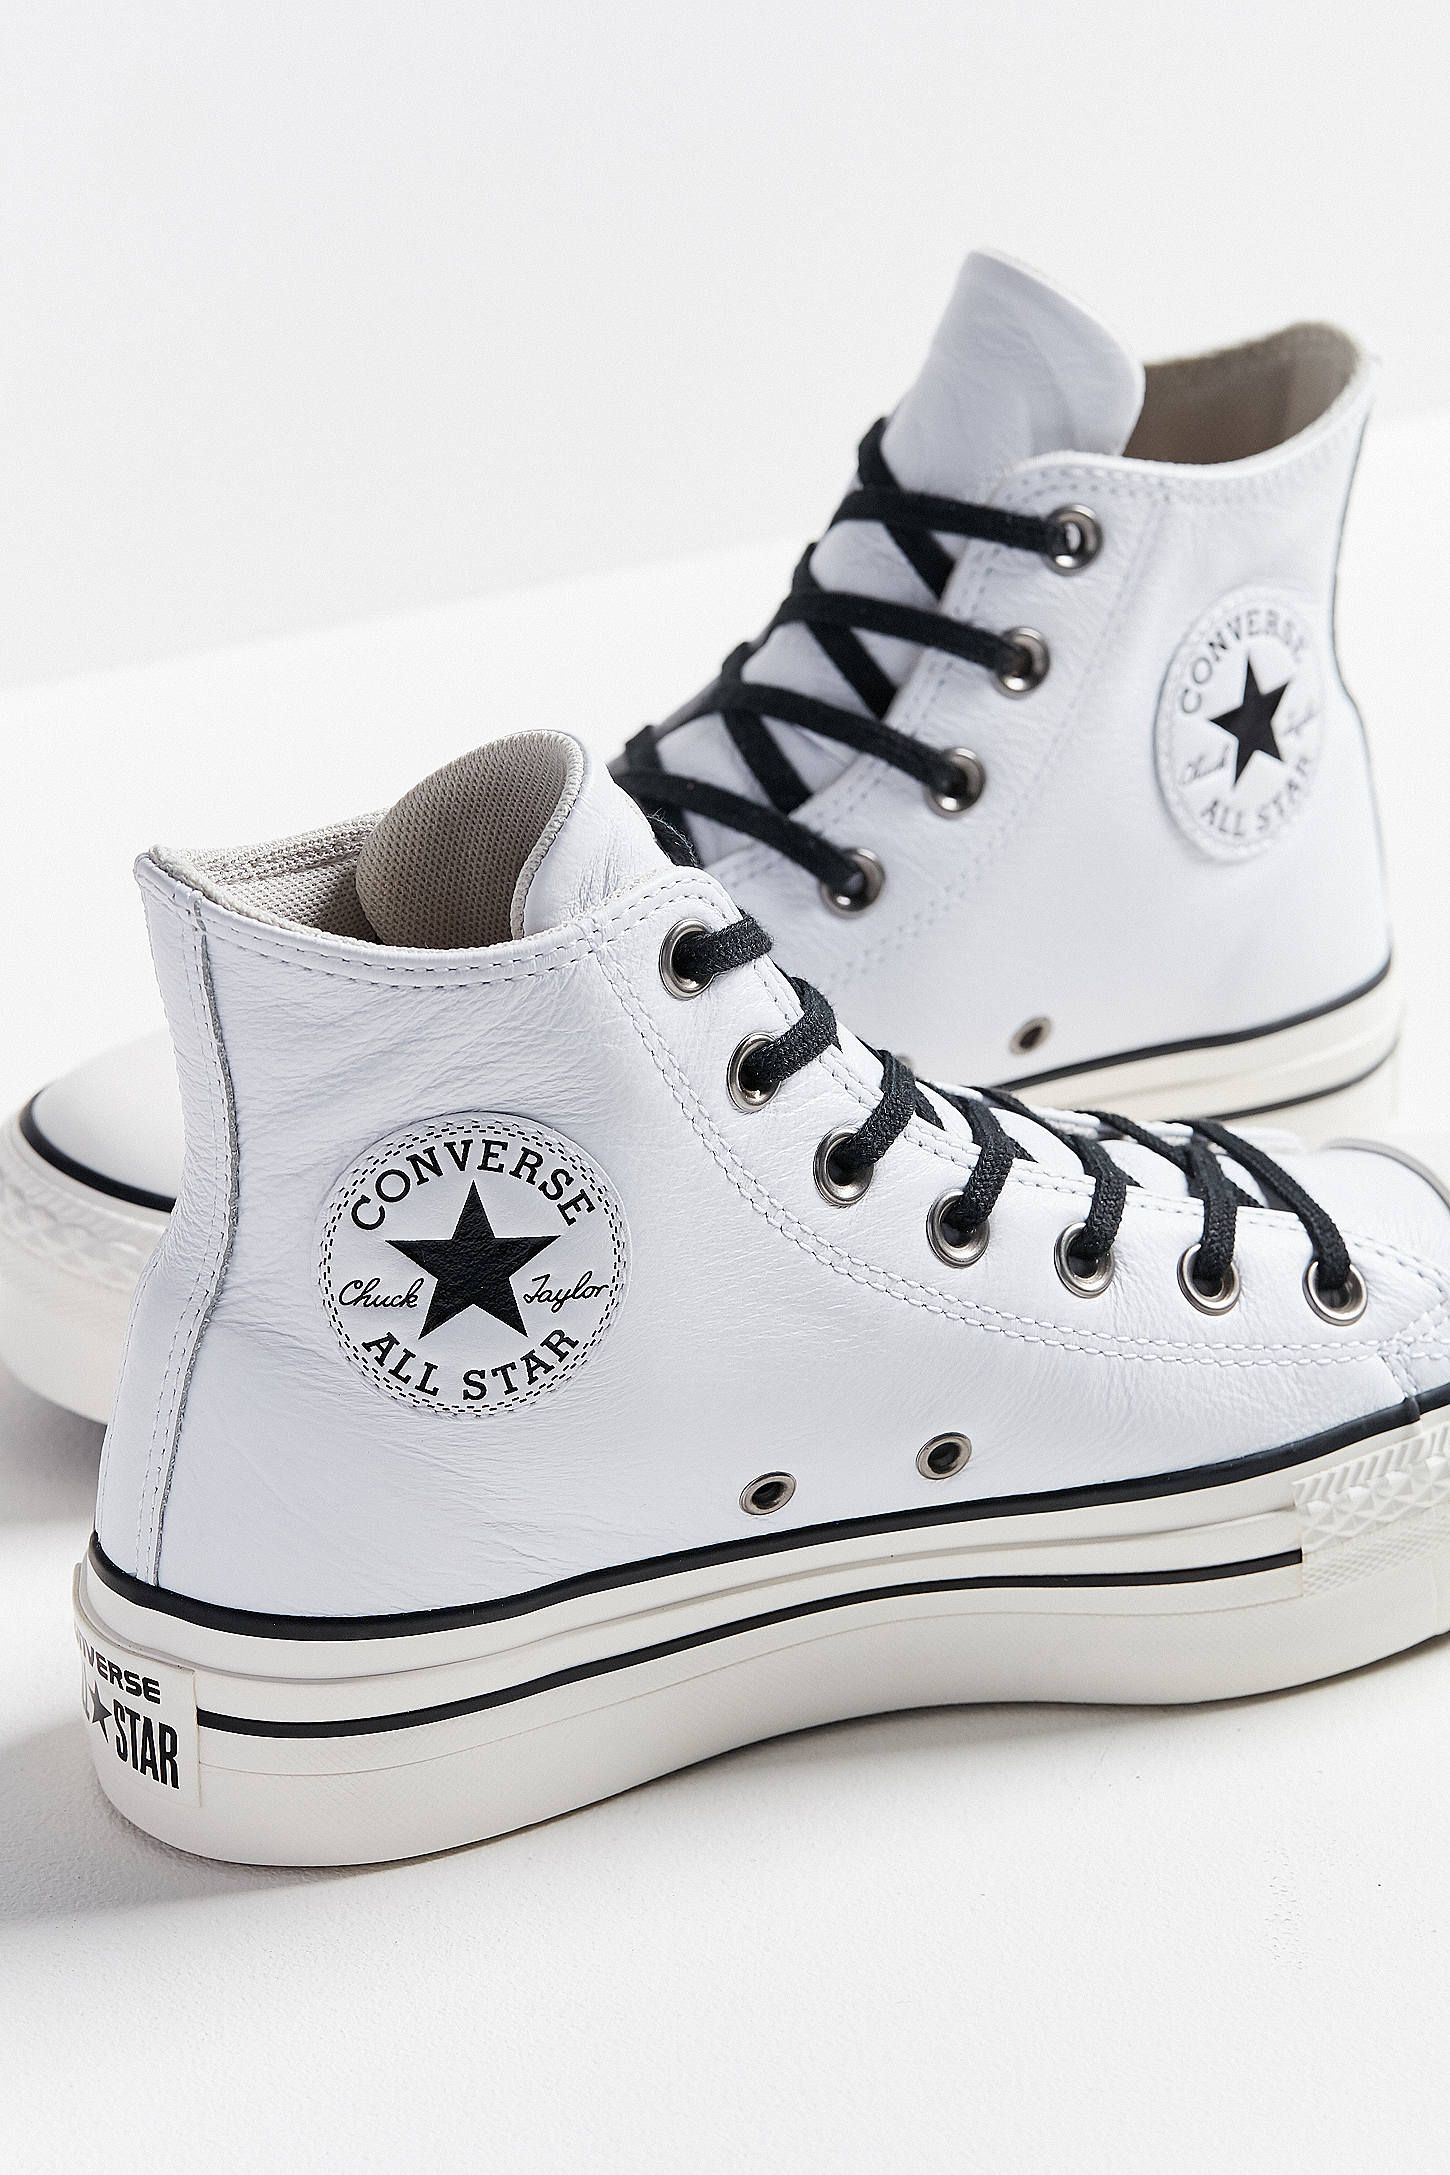 a390945de873 Slide View  5  Converse Chuck Taylor All Star Platform High Top Sneaker